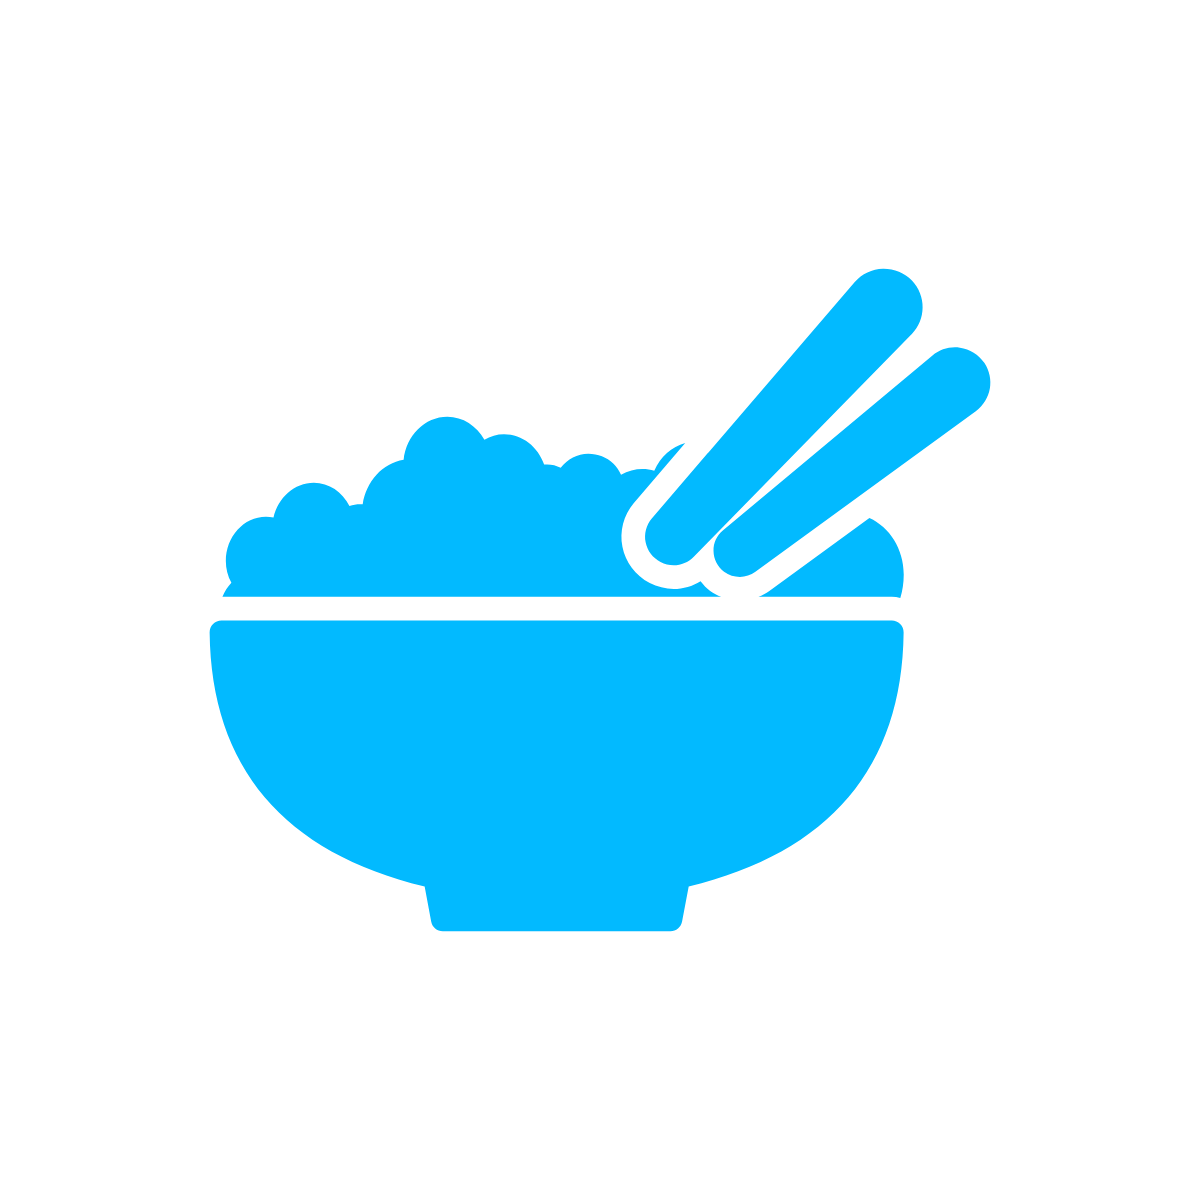 Line drawing of a bowl with chopsticks